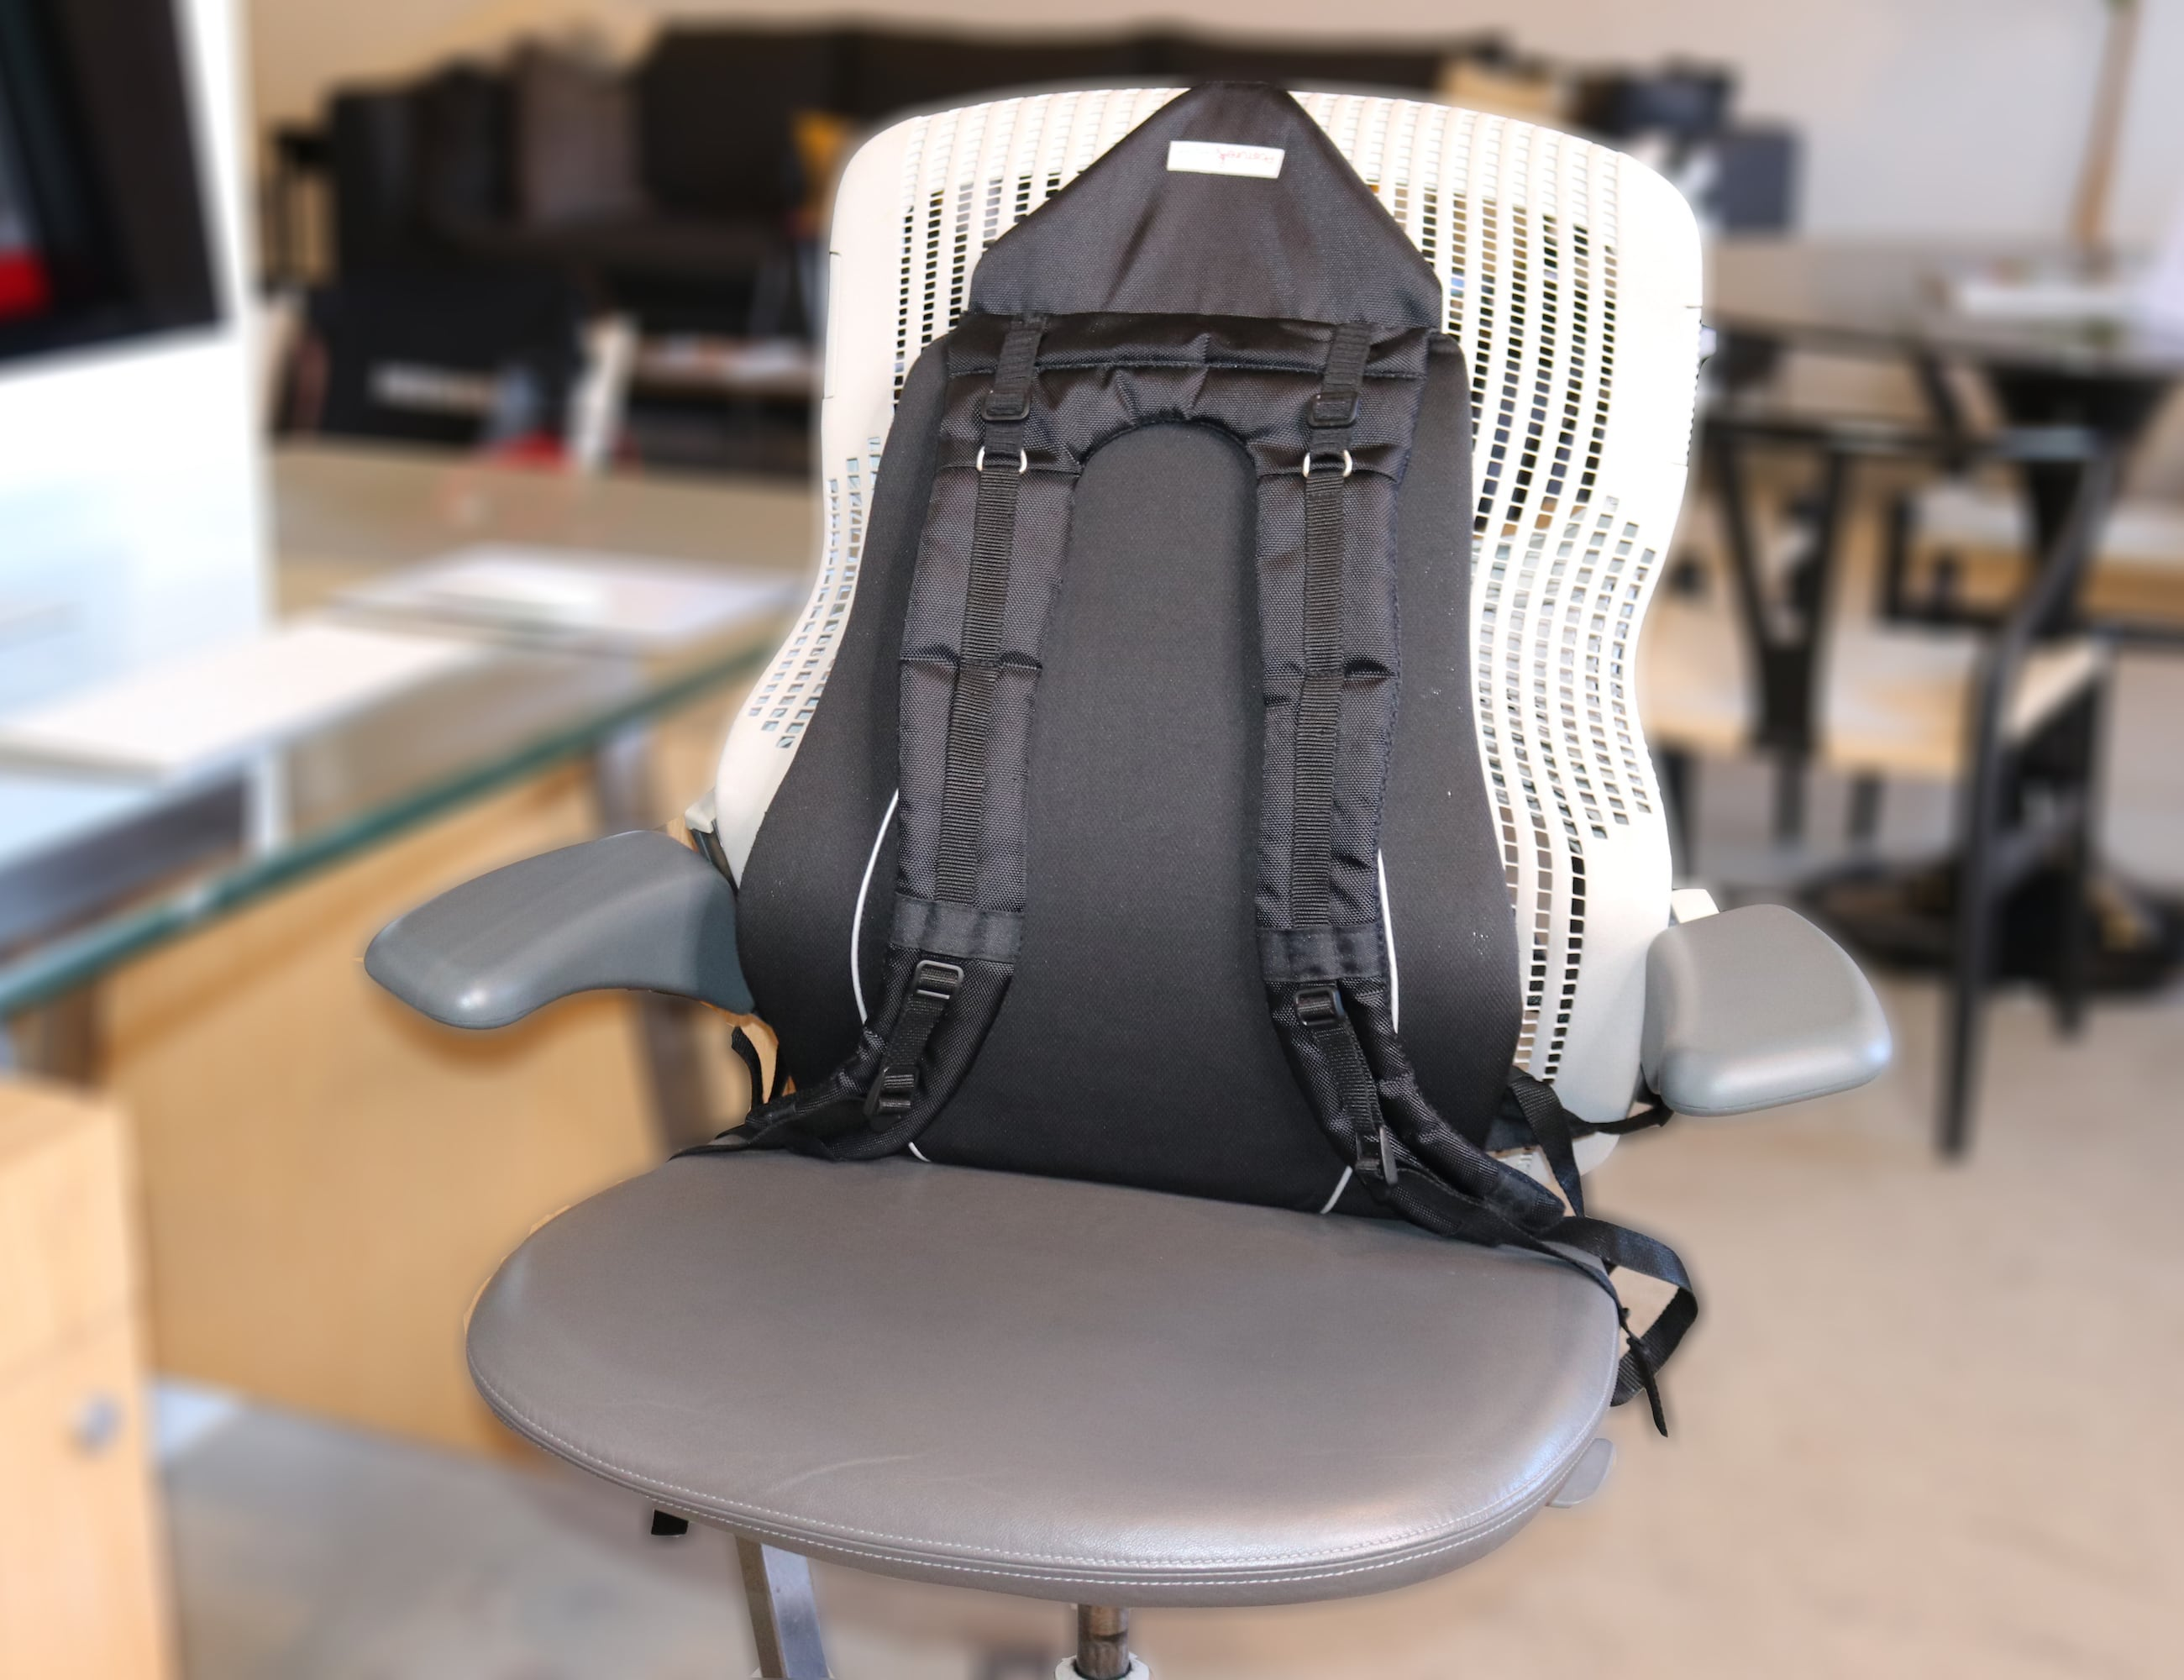 Posture Keeper Wearable Lumbar Support System